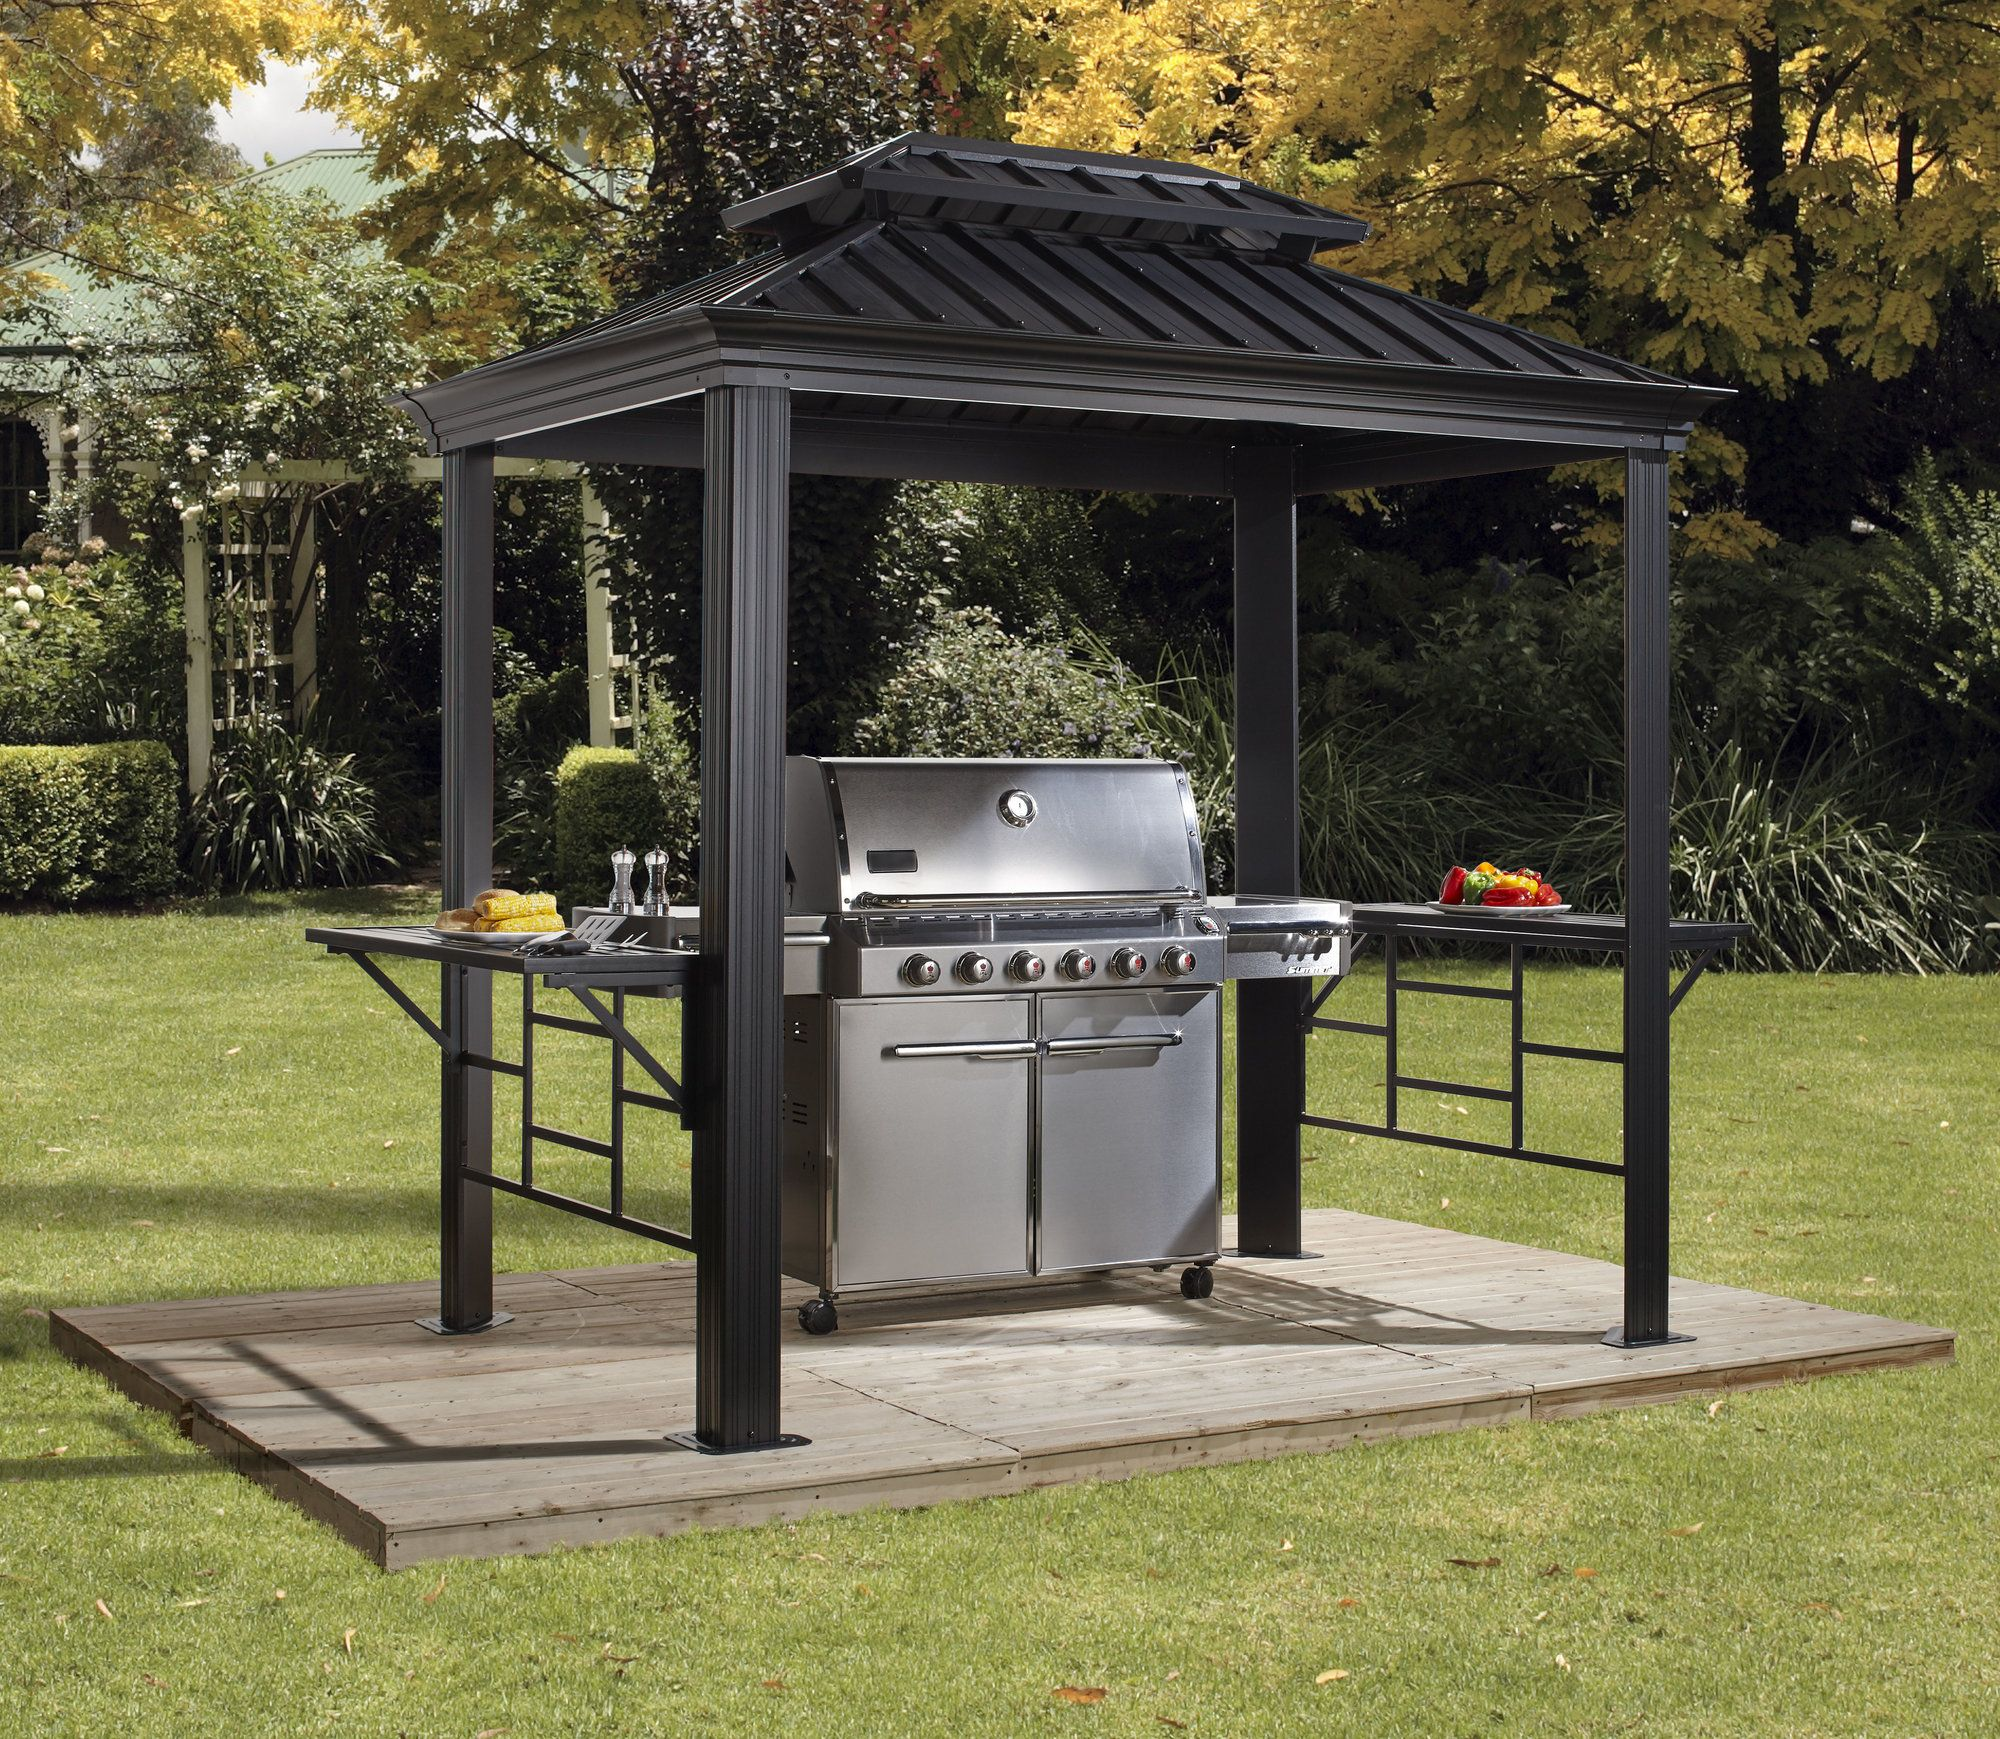 Bbq Messina 6 Ft W X 8 Ft D Metal Grill Gazebo Grill Gazebo